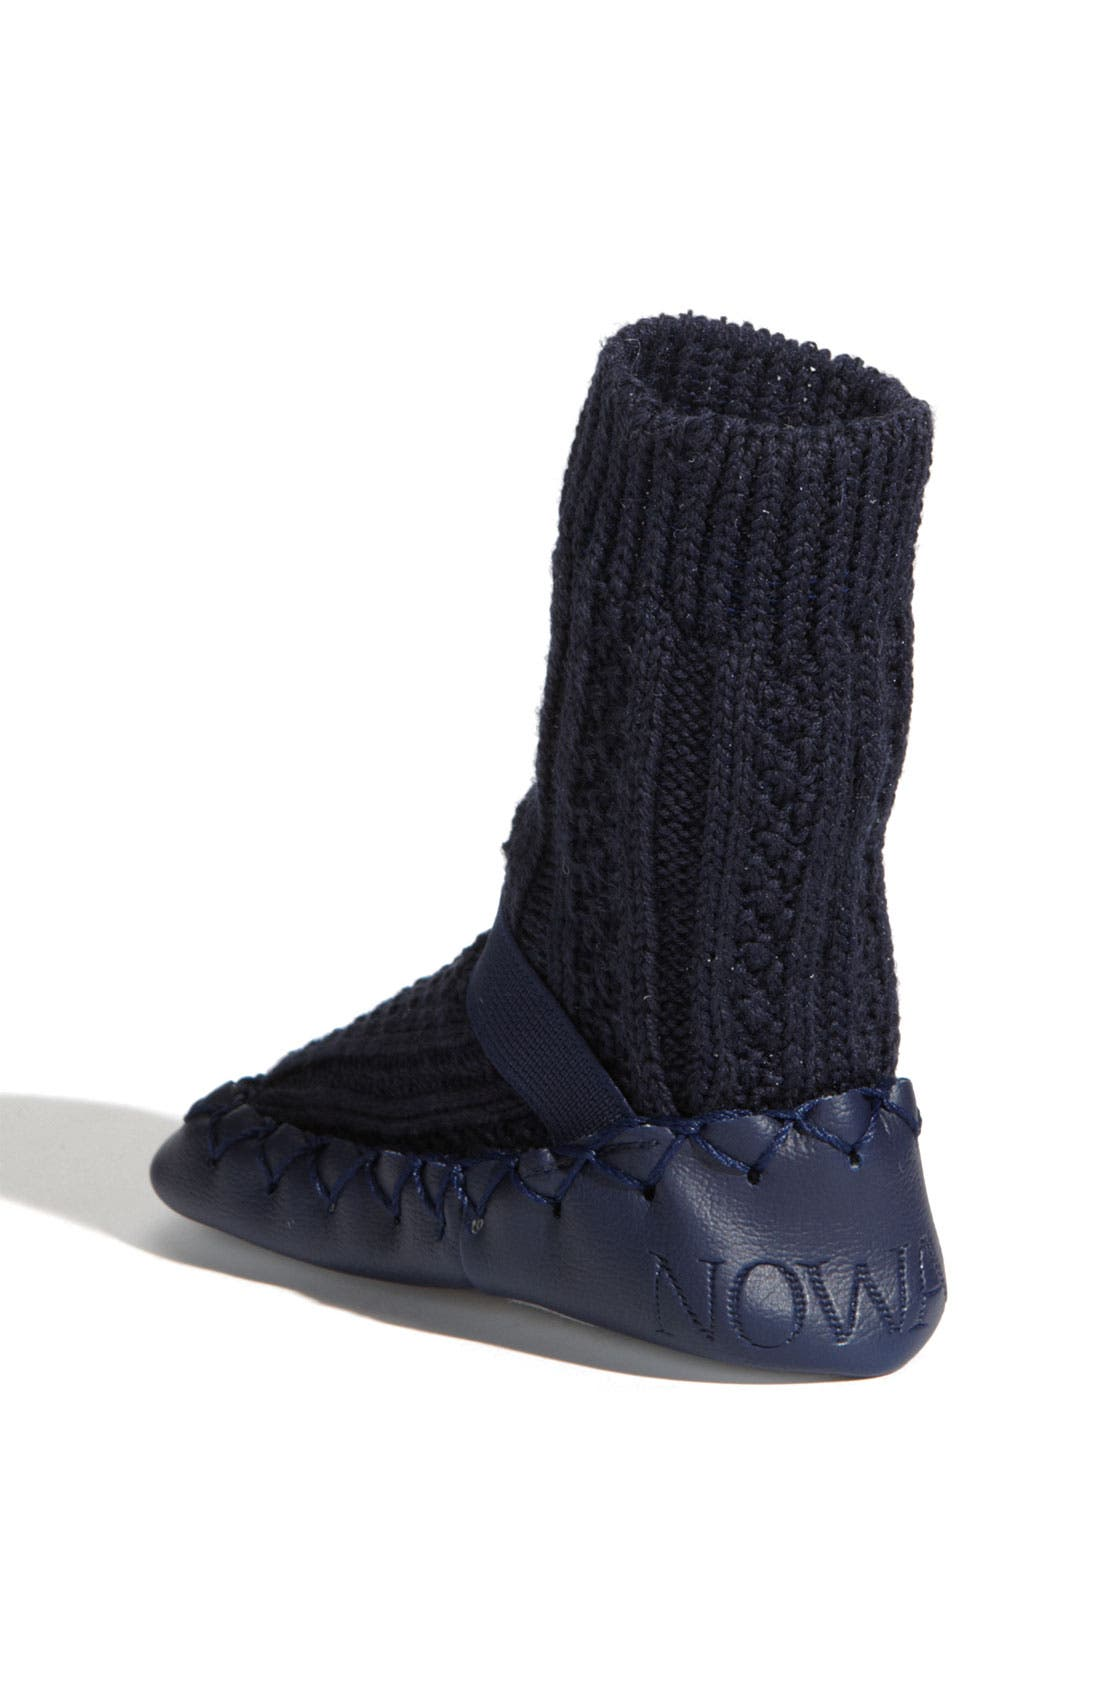 Alternate Image 2  - Nowali Cable Knit Moccasins (Baby & Walker)